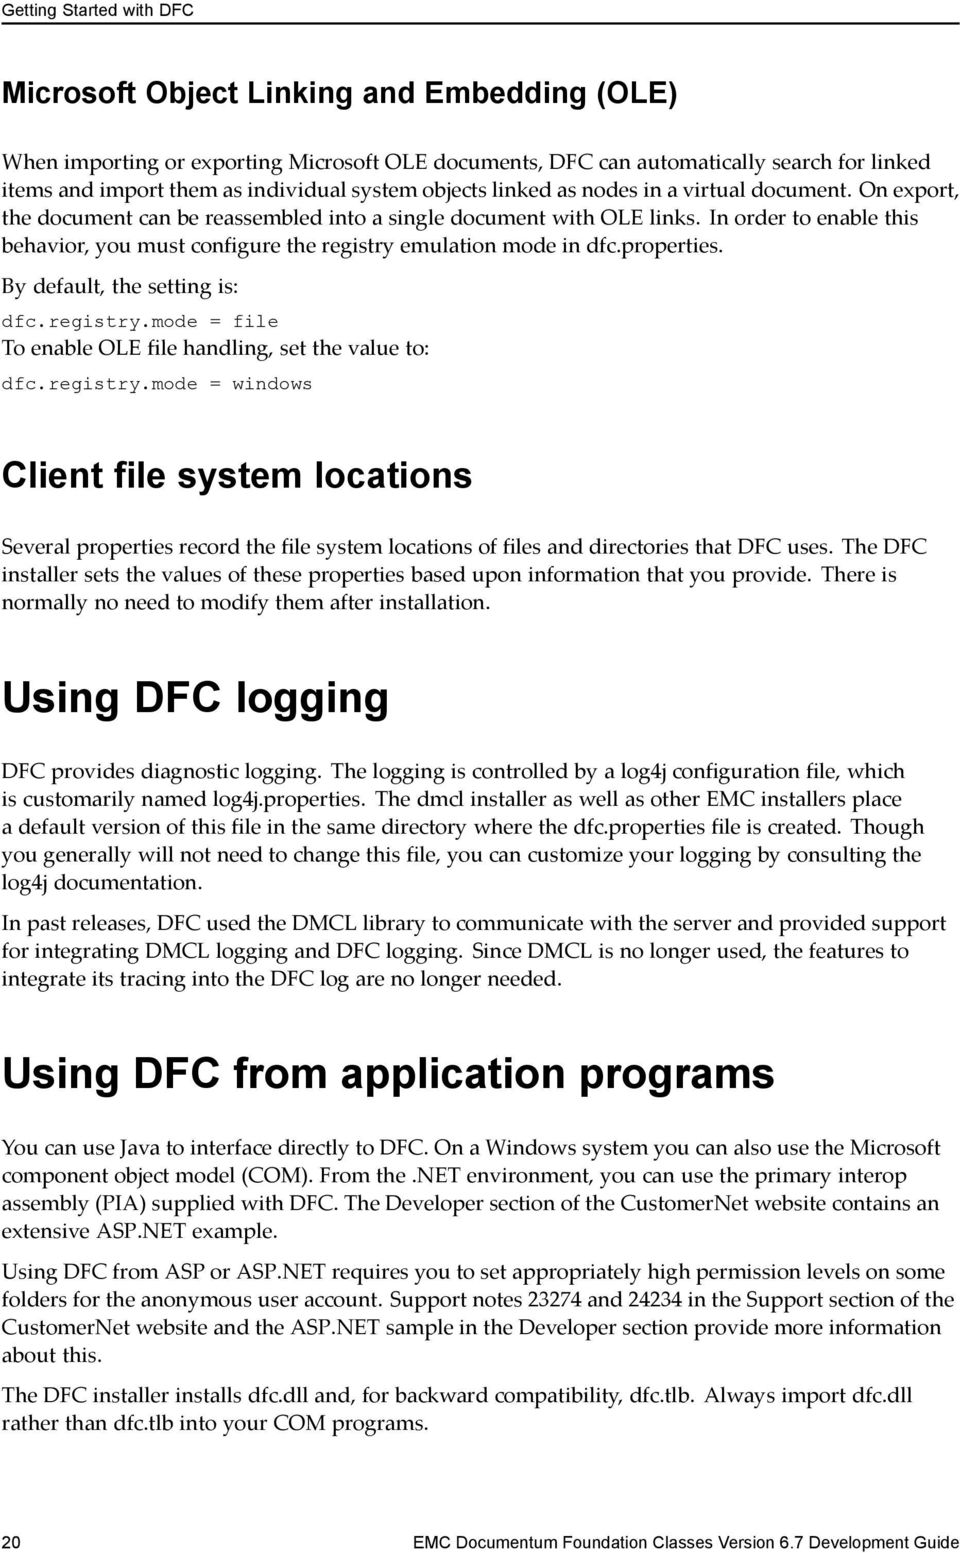 In order to enable this behavior, you must configure the registry emulation mode in dfc.properties. By default, the setting is: dfc.registry.mode = file To enable OLE file handling, set the value to: dfc.